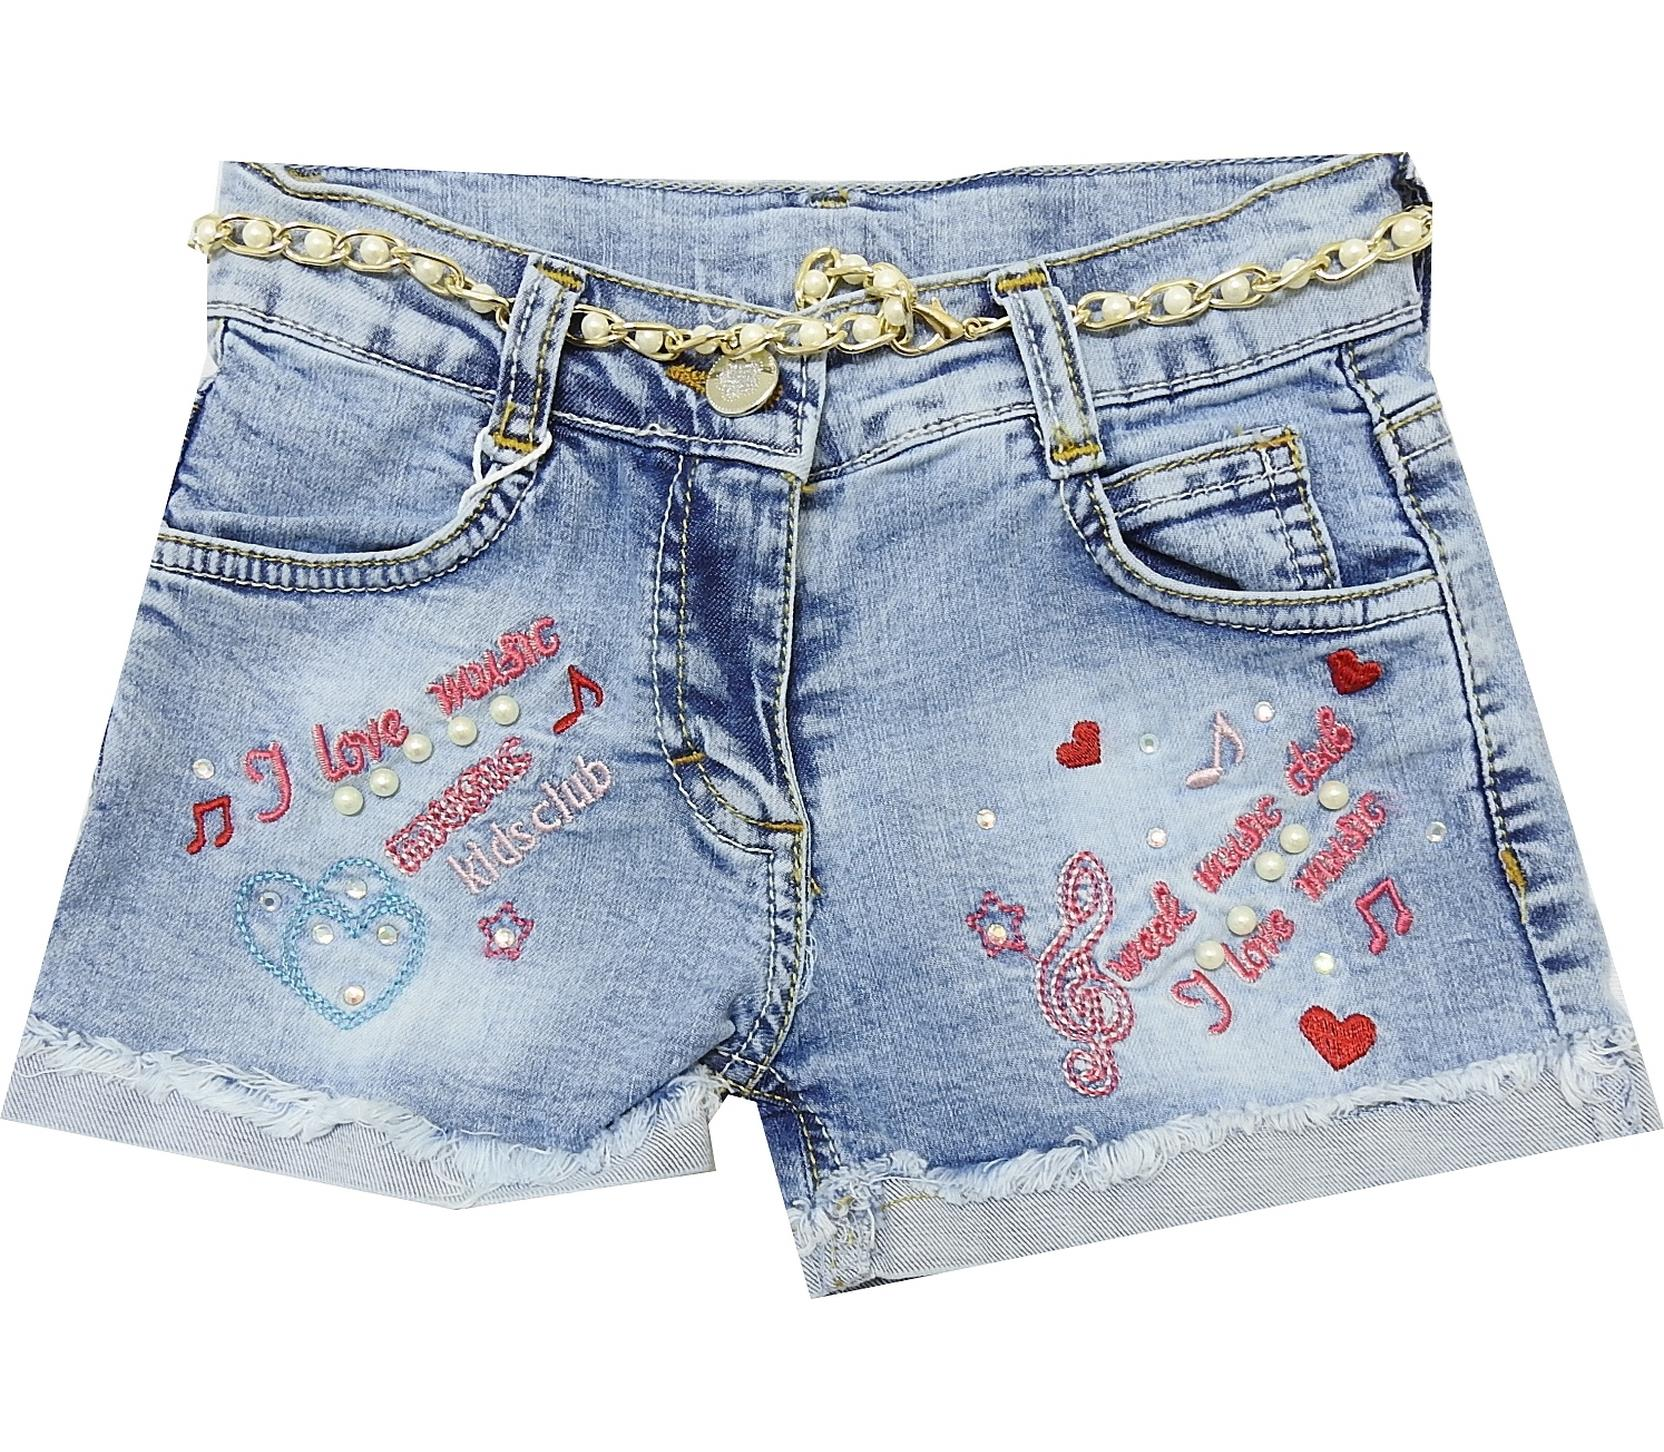 Melody motif printed denim short for girl (2-3-4-5-6 age)